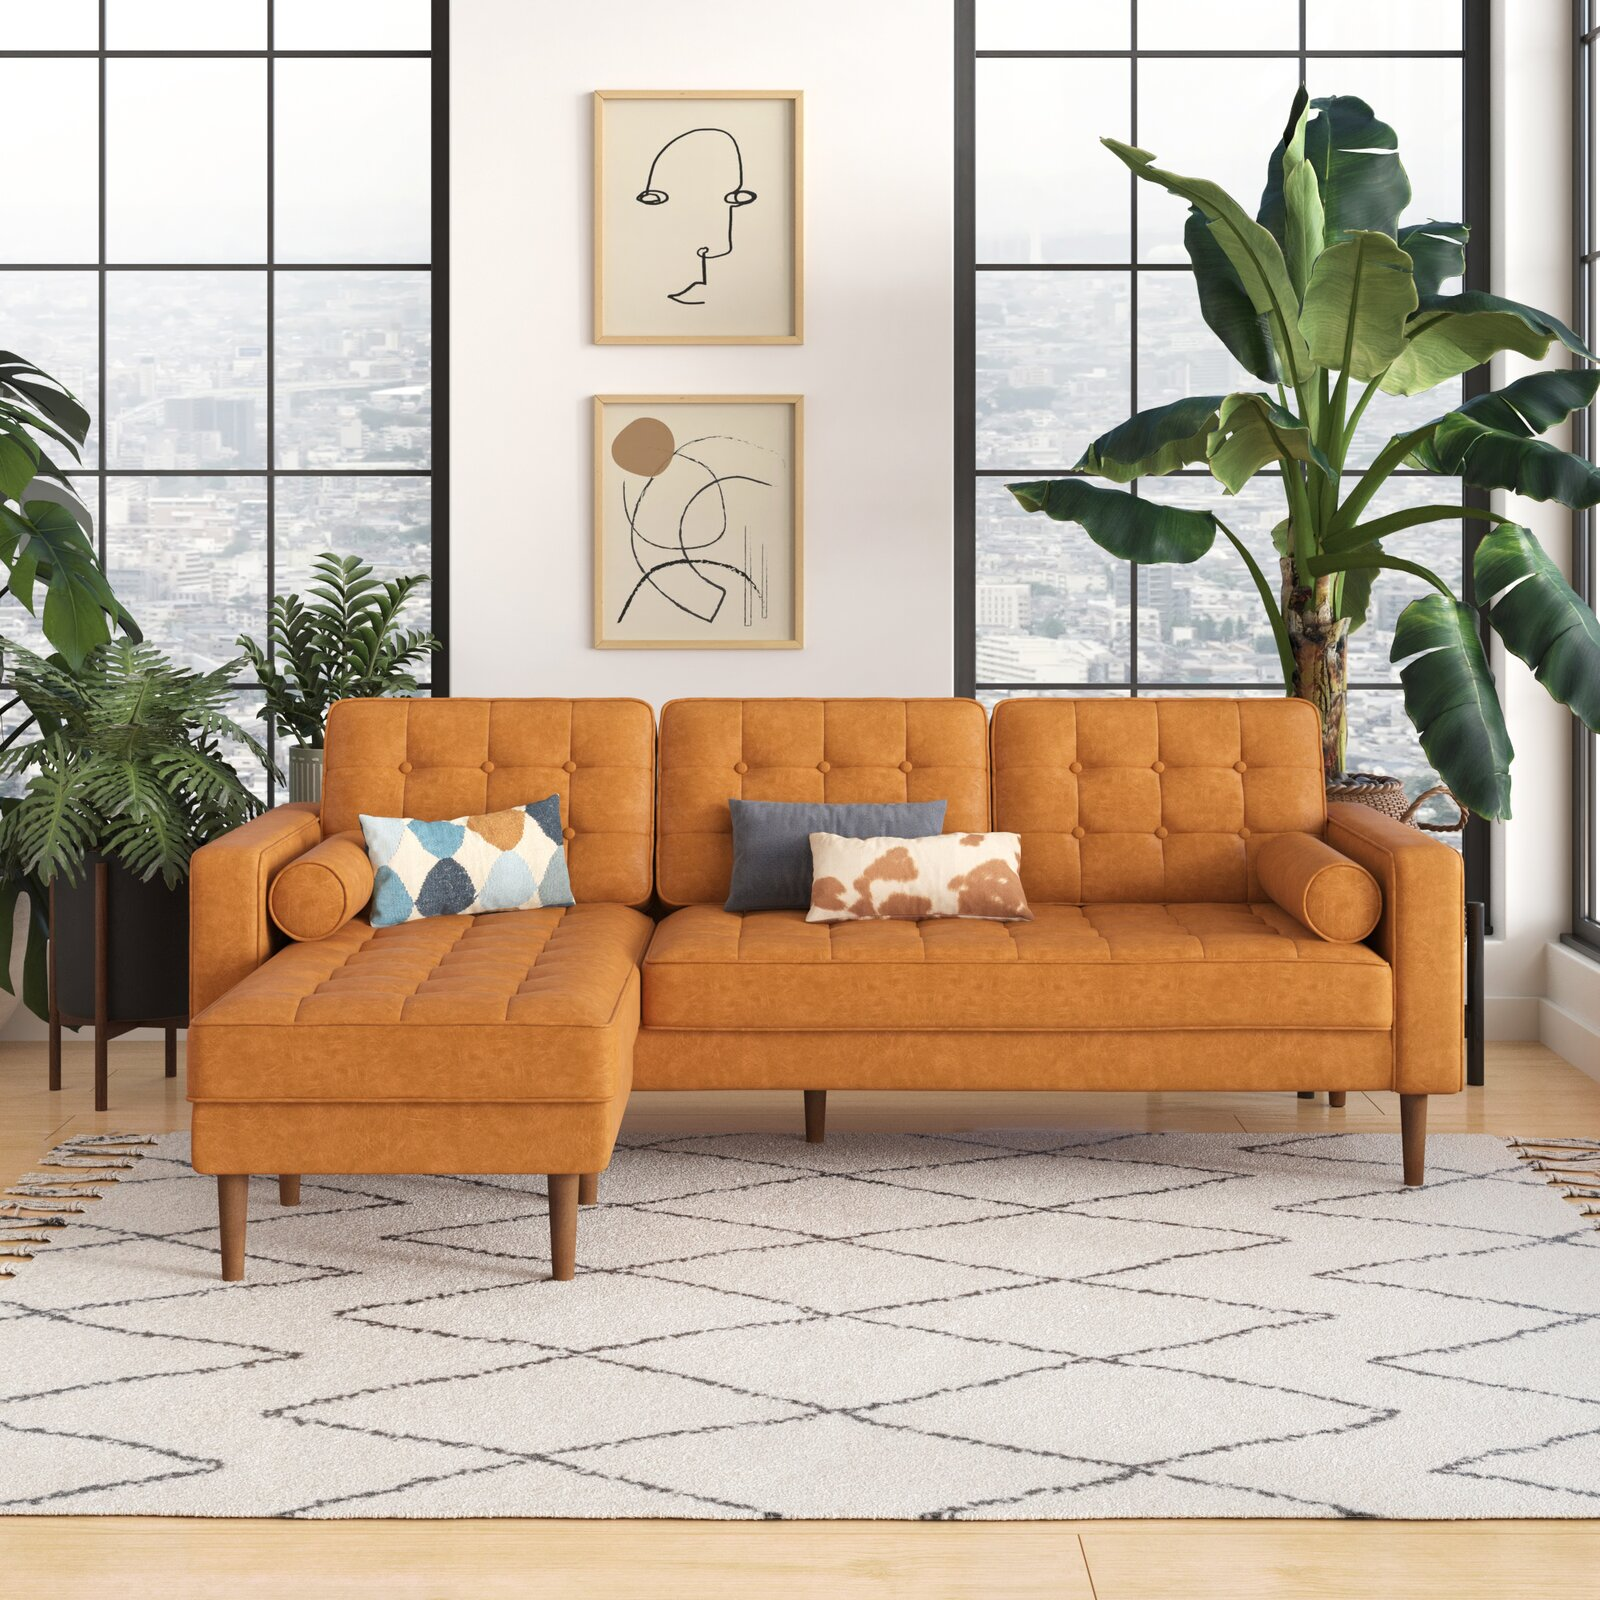 sectional-sofa-for-small-rooms-bright-orange-camel-vegan-leather-upholstery-cylindrical-bolster-pillows-tufted-back-85-inch-couch-with-chaise